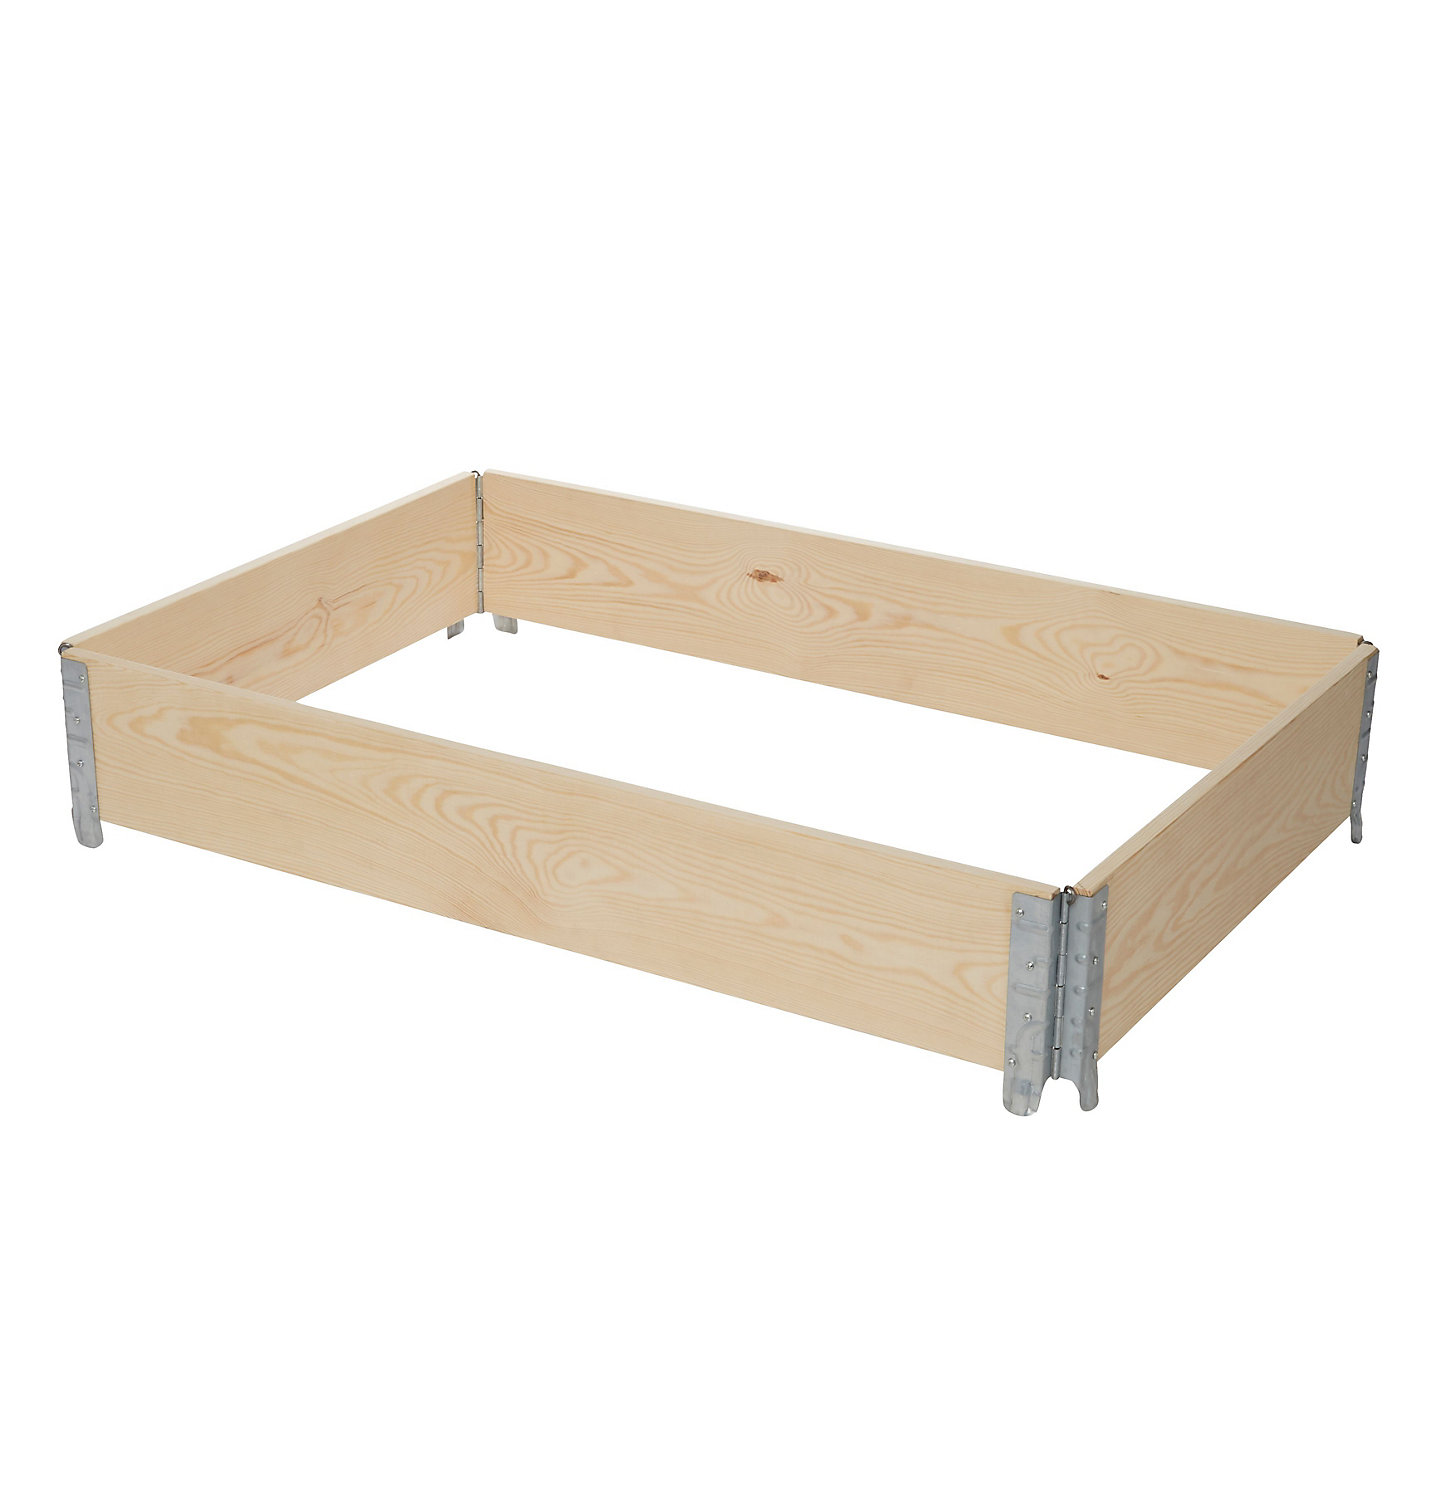 Verve Large Raised bed kit 0.96m²